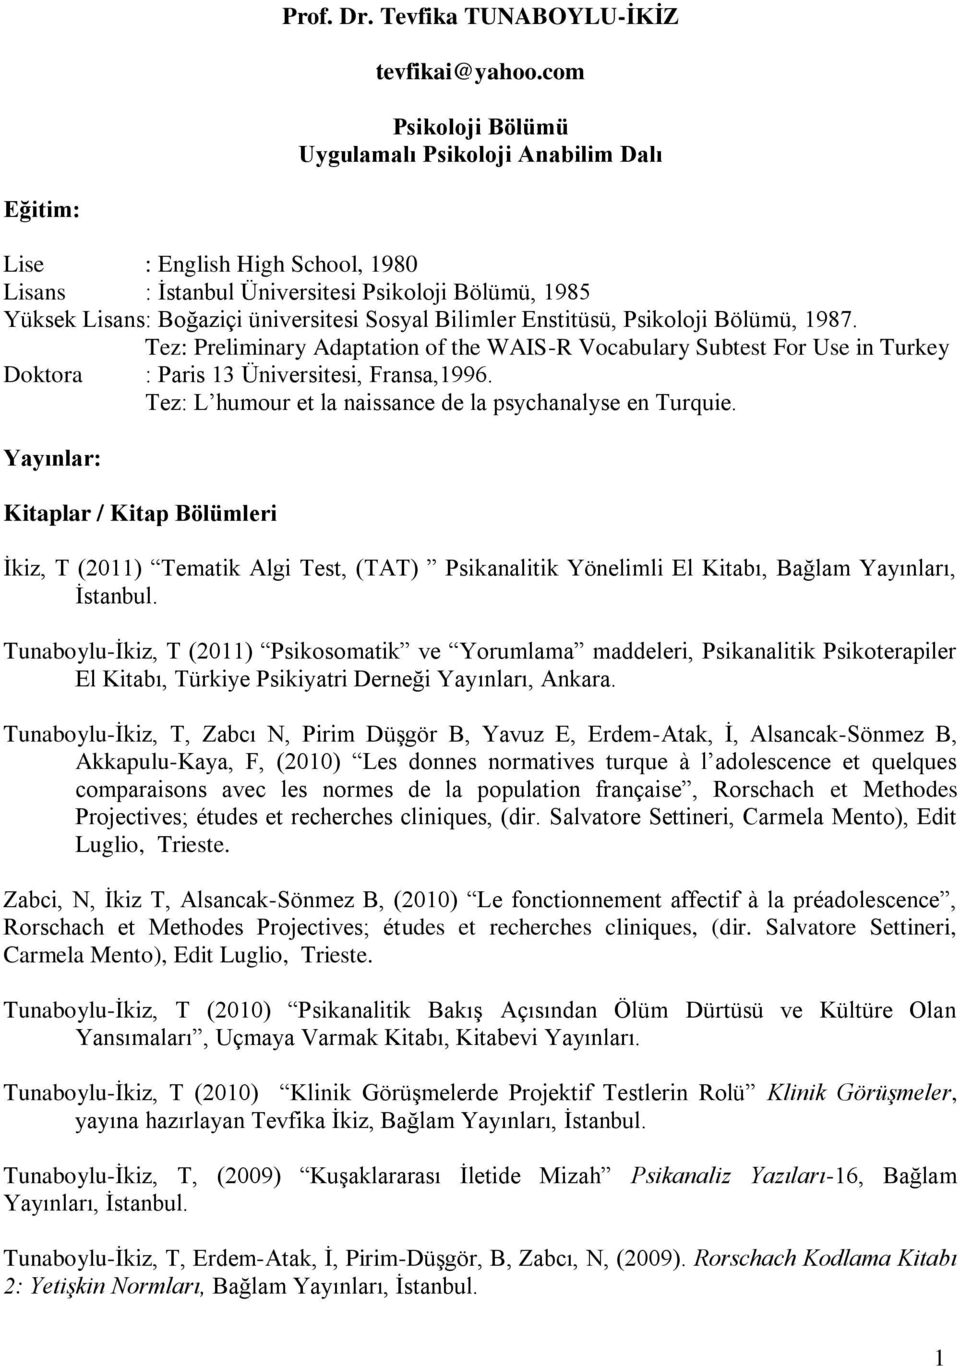 Bilimler Enstitüsü, Psikoloji Bölümü, 987. Tez: Preliminary Adaptation of the WAIS-R Vocabulary Subtest For Use in Turkey Doktora : Paris 3 Üniversitesi, Fransa,996.